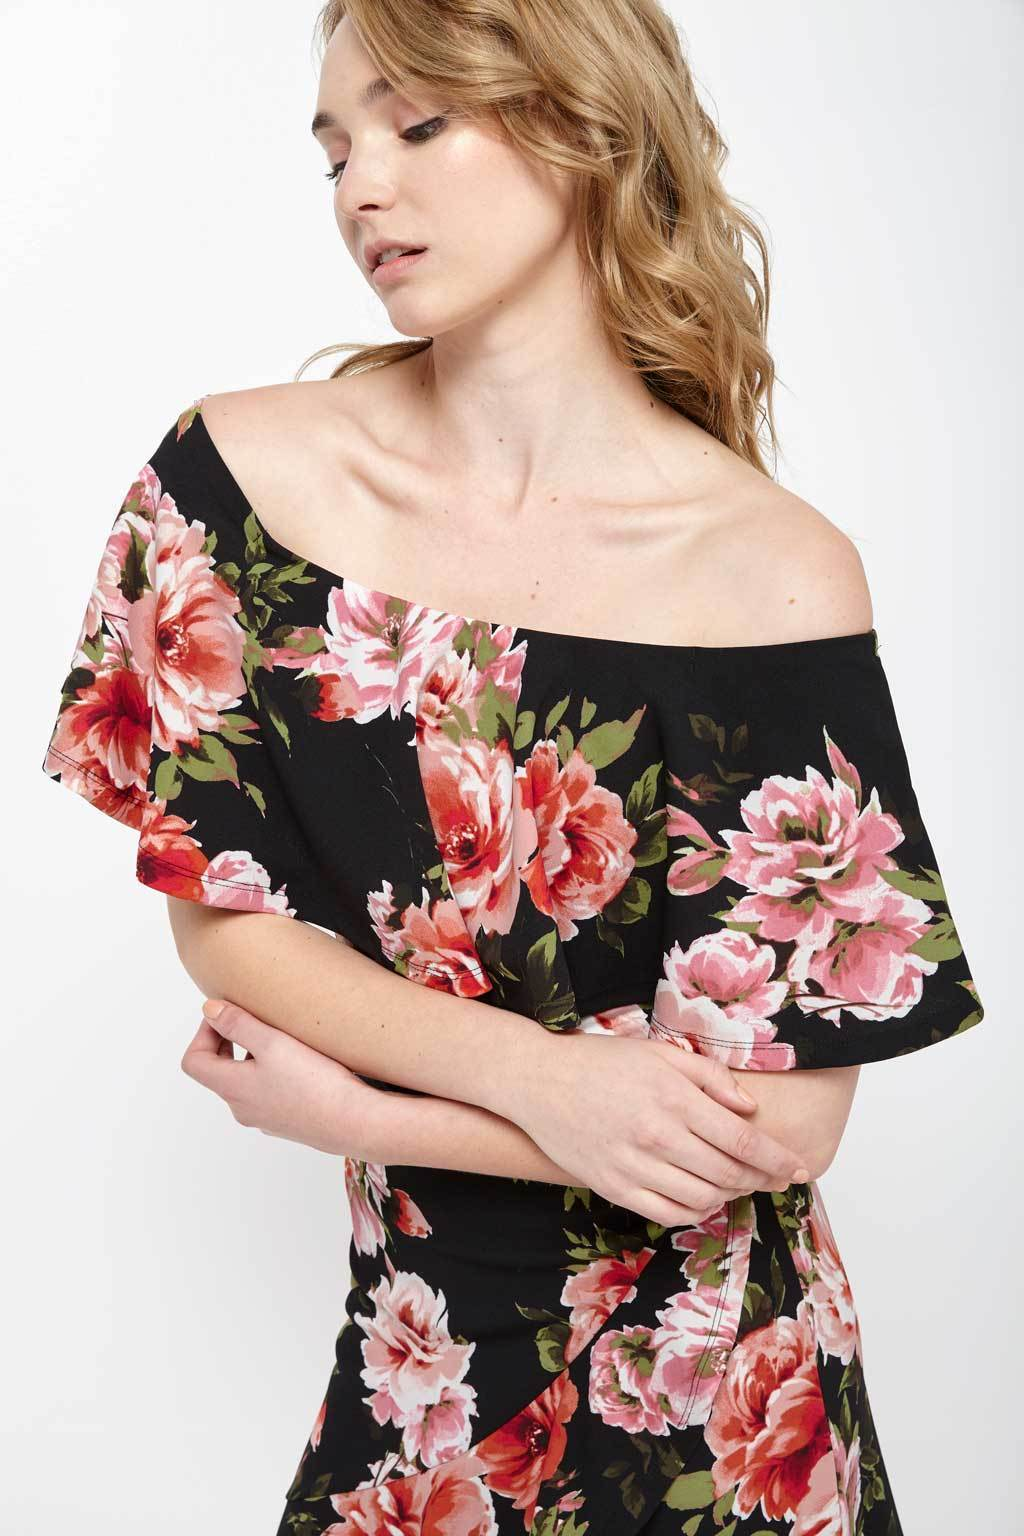 Poshsquare Dress Floral Off-The-Shoulder Ruffle Dress